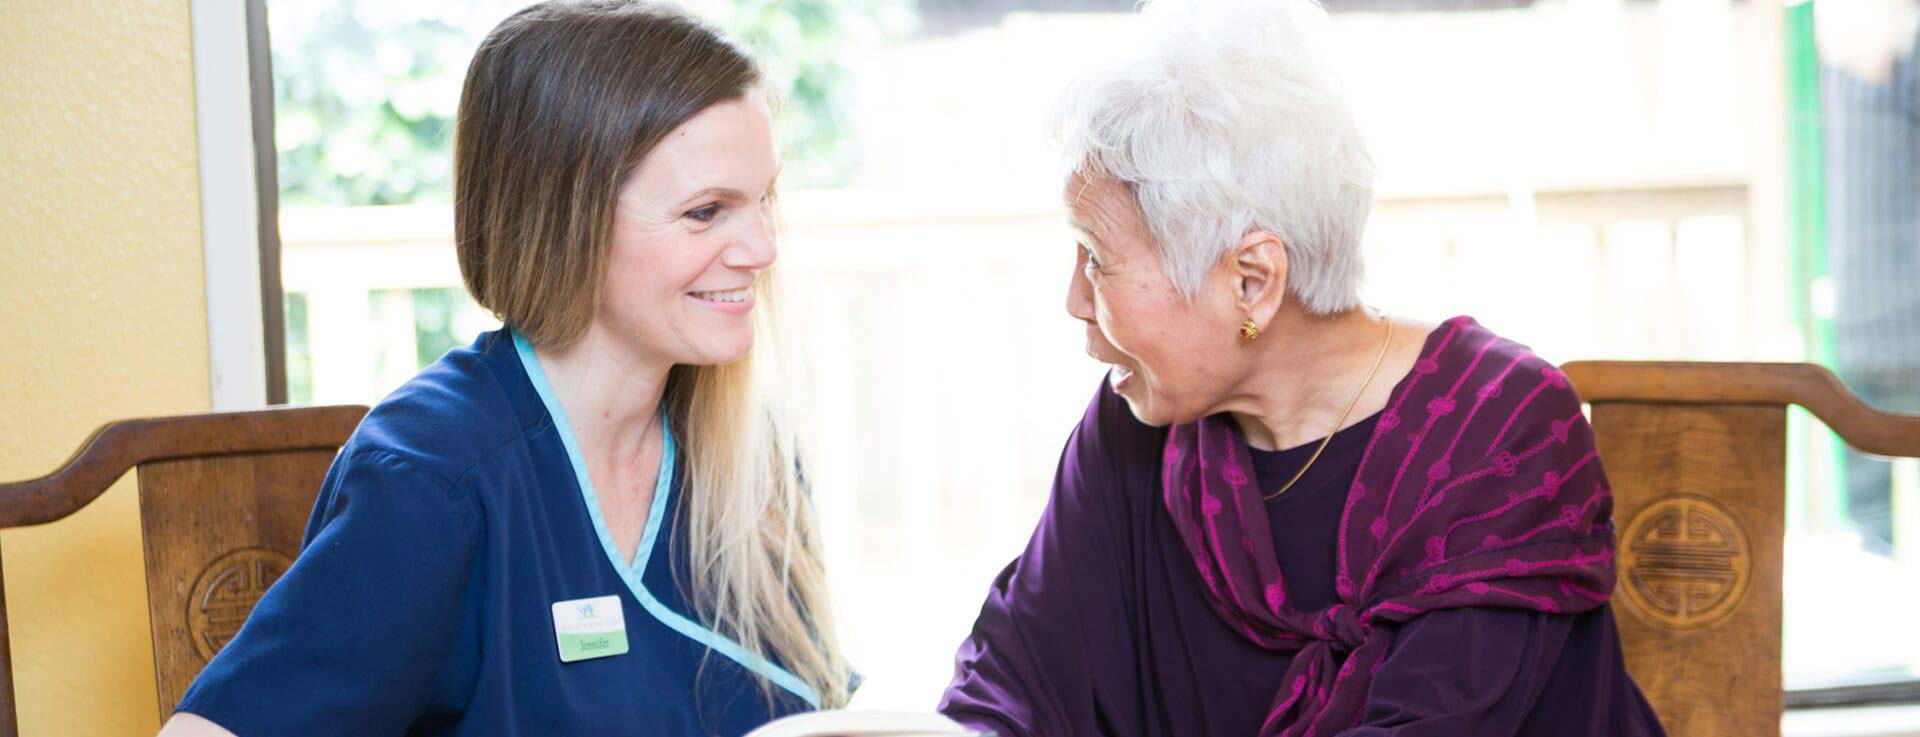 Caregiver talking with elderly woman